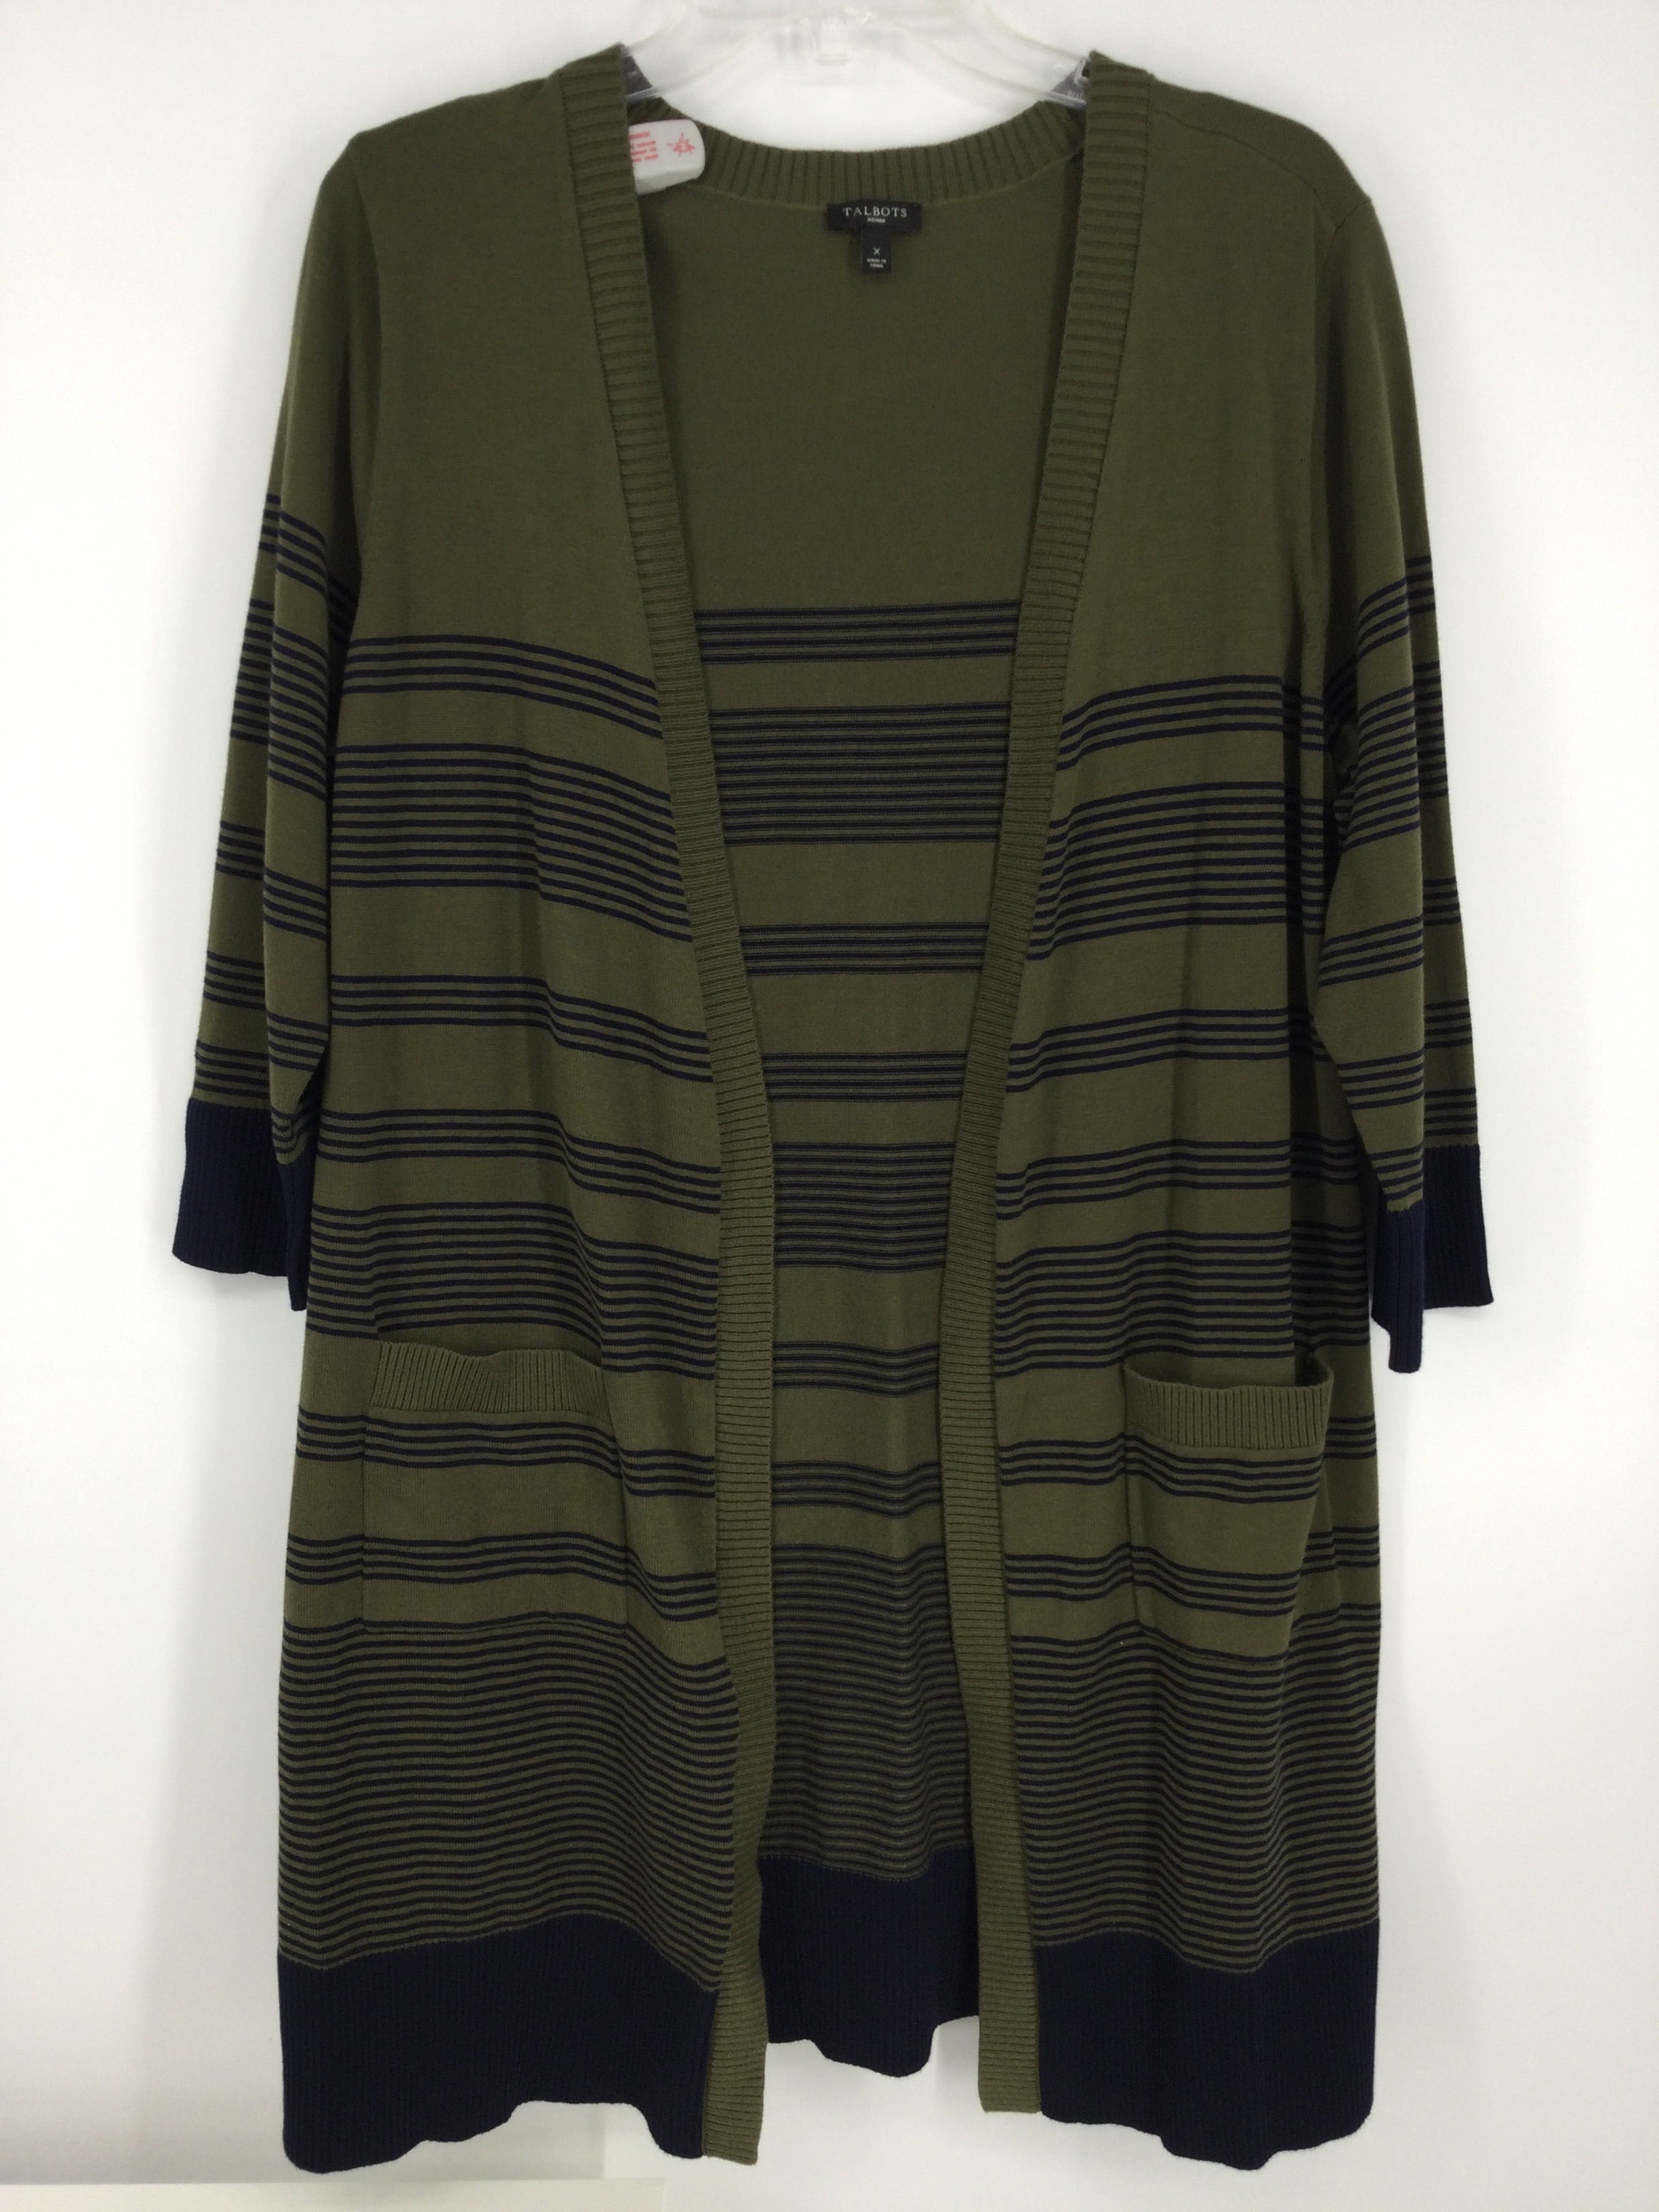 Primary Photo - Brand: TALBOTS <br>Style: SWEATER CARDIGAN LIGHTWEIGHT <br>Color: STRIPED <br>Size: XL <br>SKU: 128-3221-1861